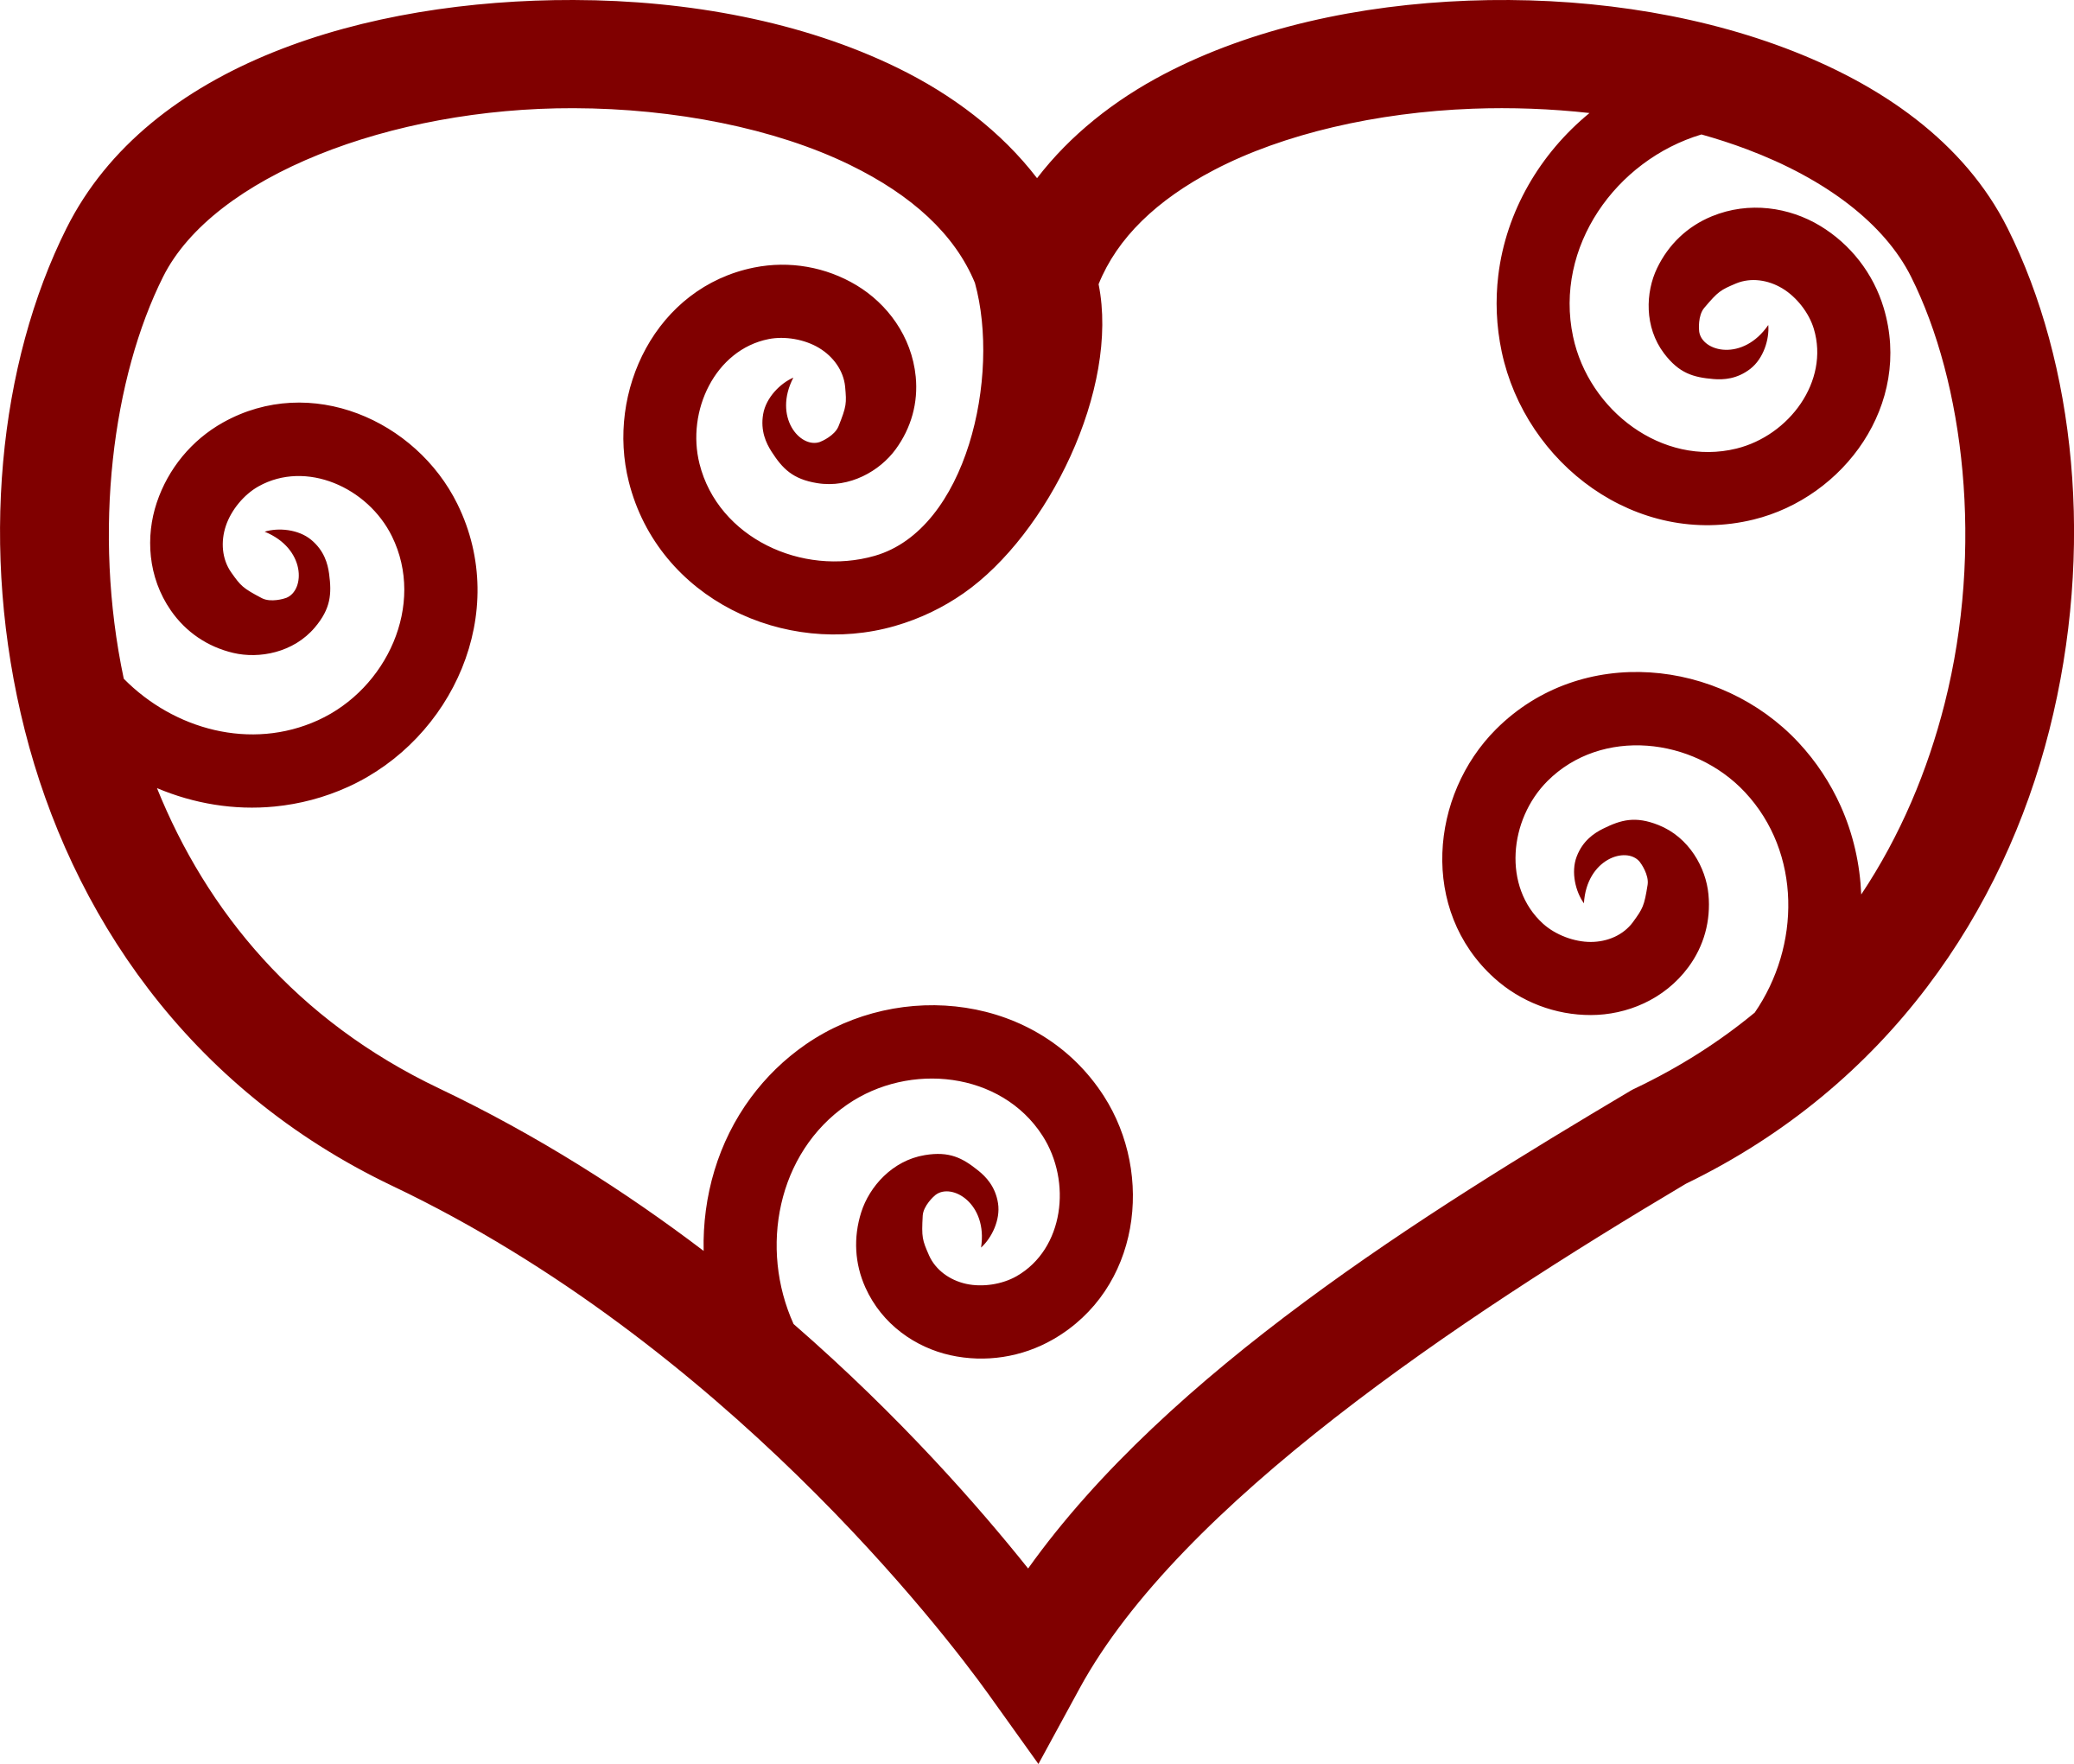 Hearts clipart house. Valentine red maori heart